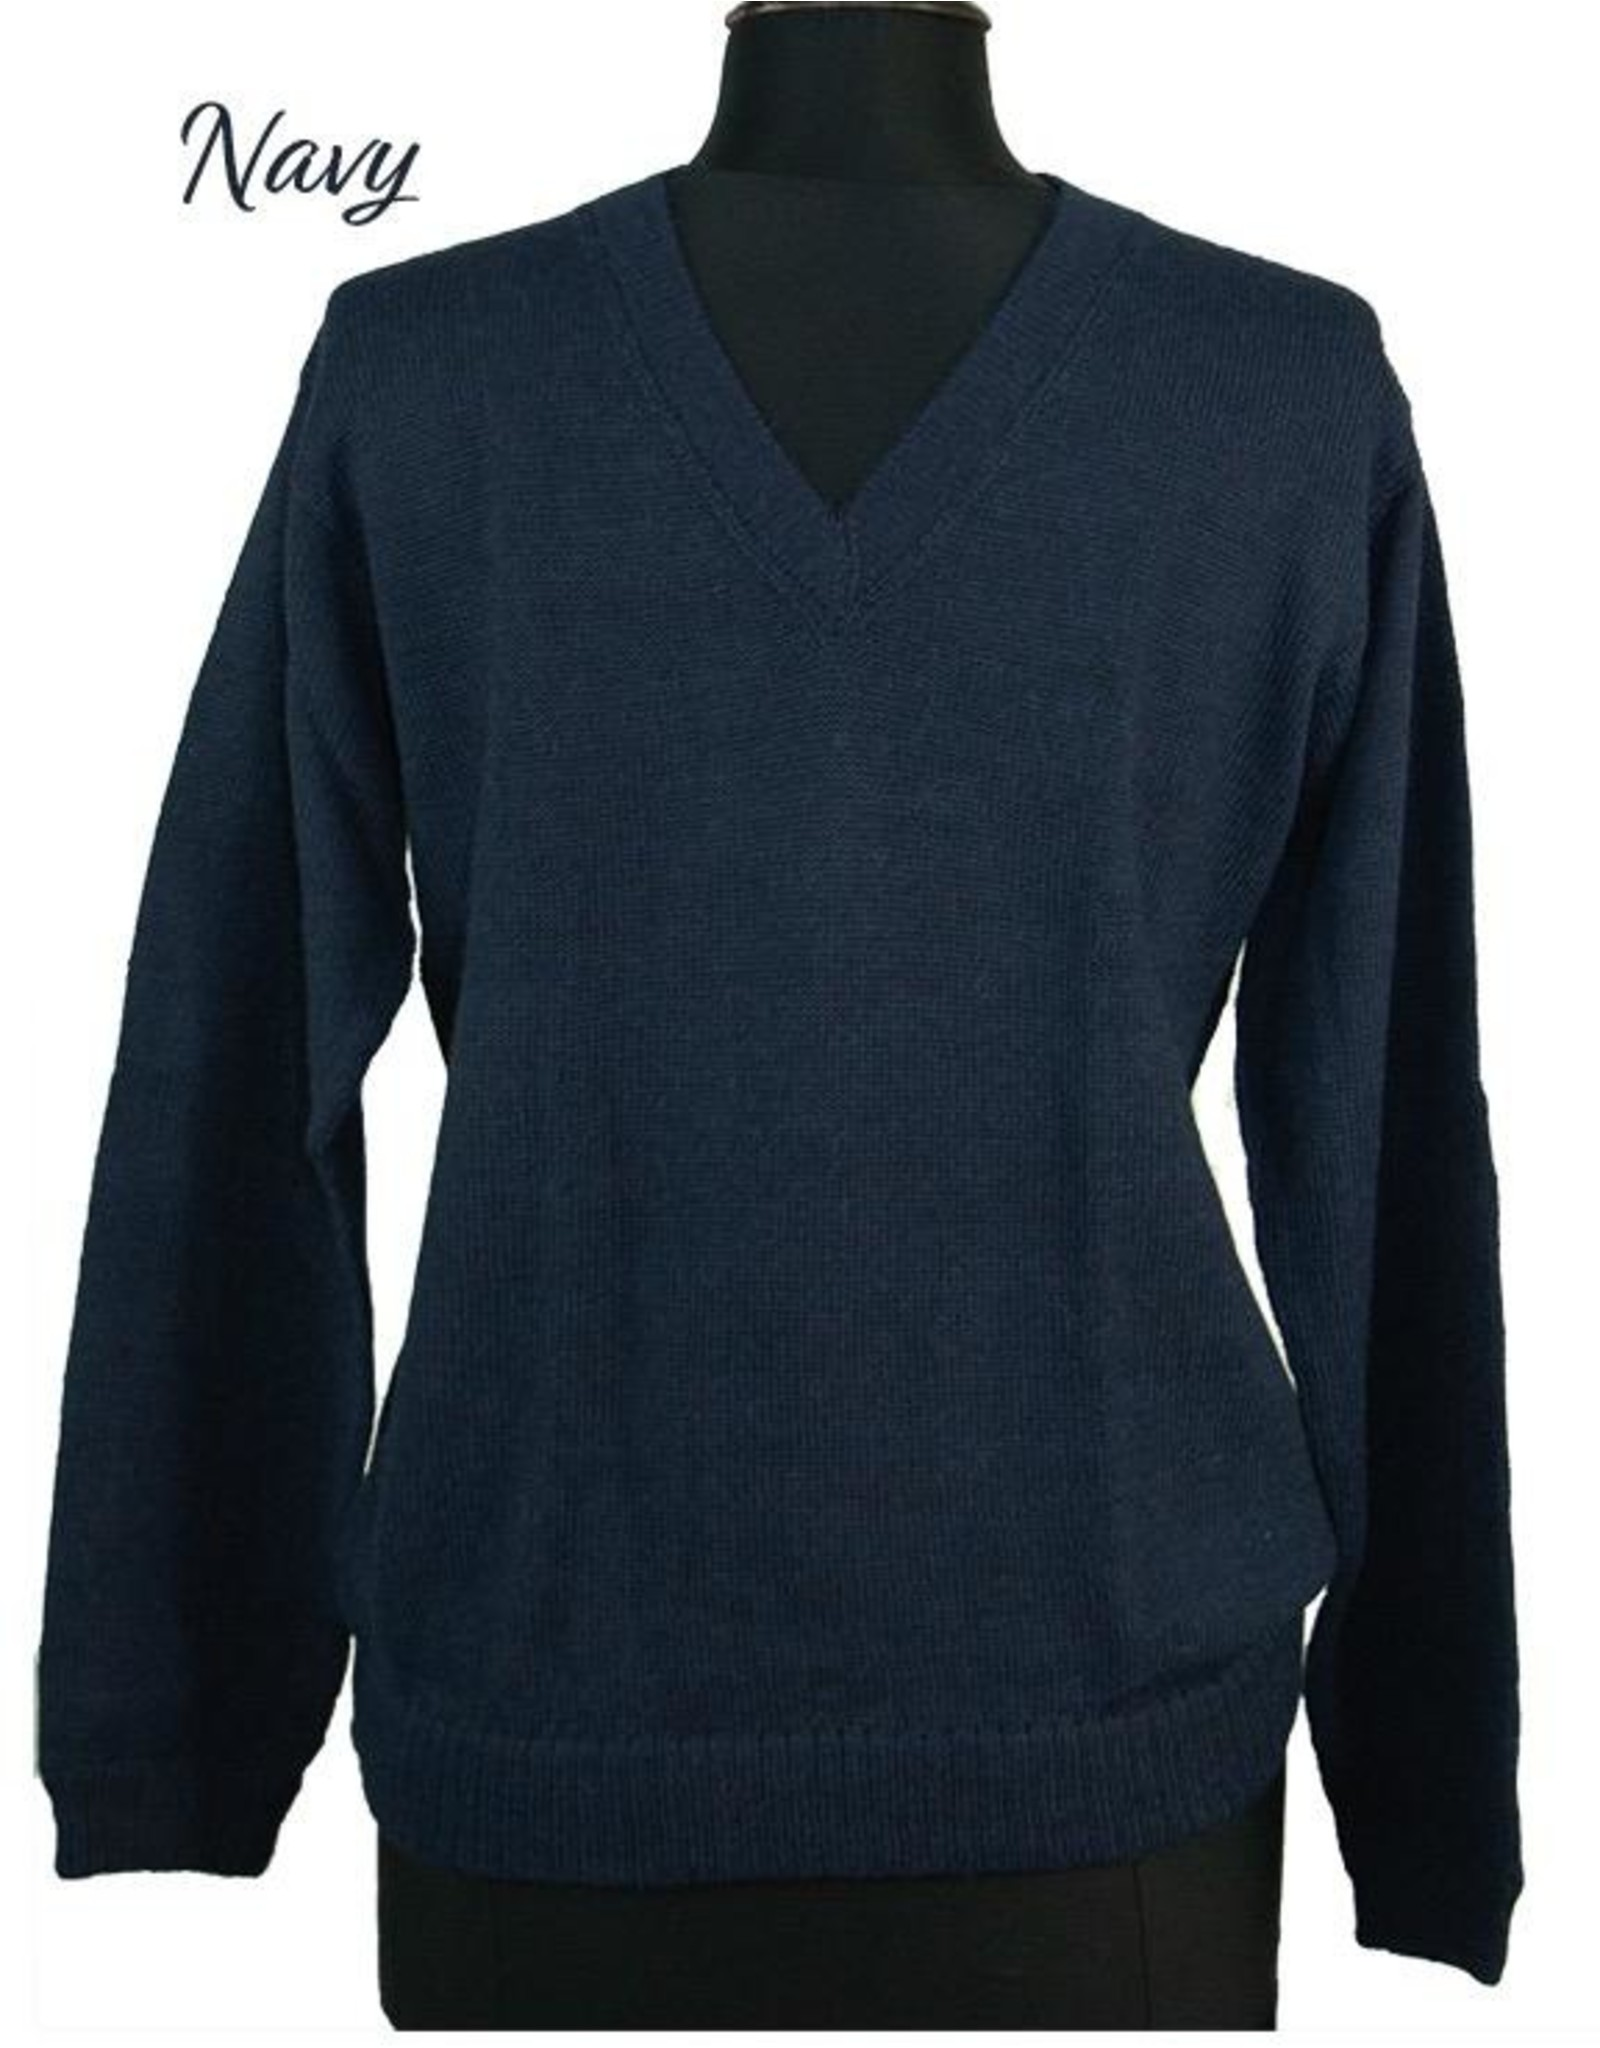 The Sweater Venture Lightweight V-Neck Alpaca Pullover